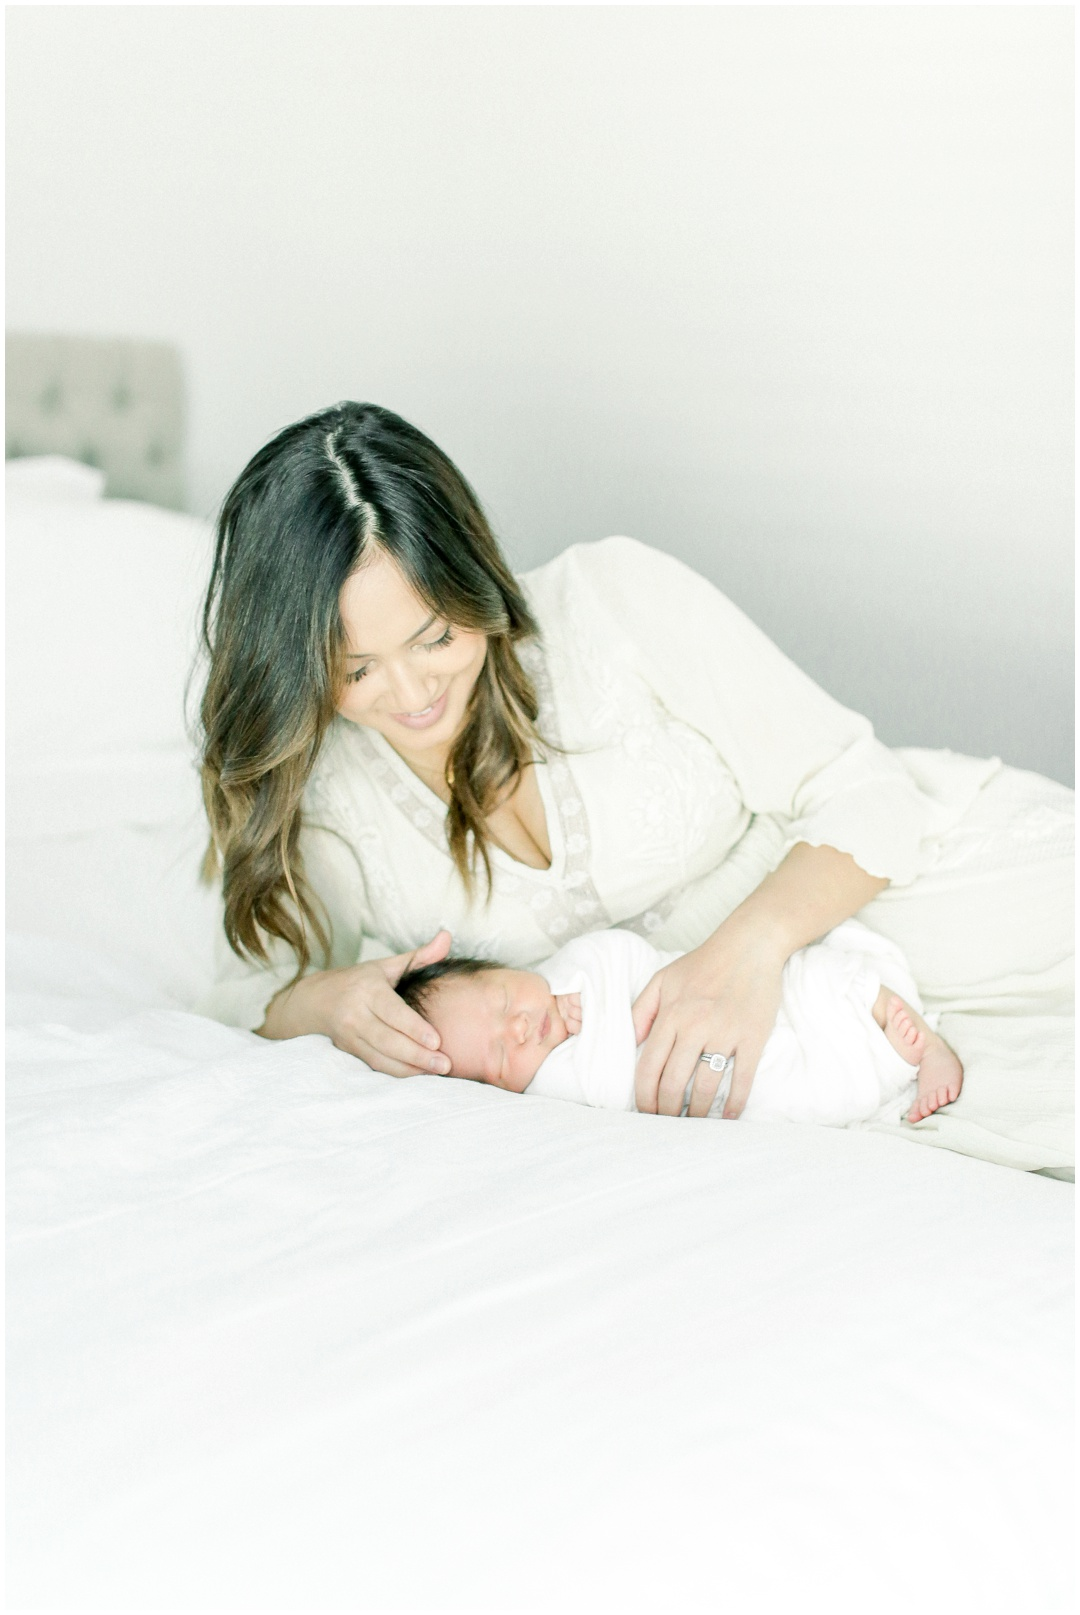 Newport_Beach_Newborn_Photographer_Newport_Beach_Maternity_Photographer_Orange_County_Family_Photographer_Cori_Kleckner_Photography_Huntington_Beach_Photographer__Corey_Knapp_Jessica_Knapp_Family_Photos__2782.jpg